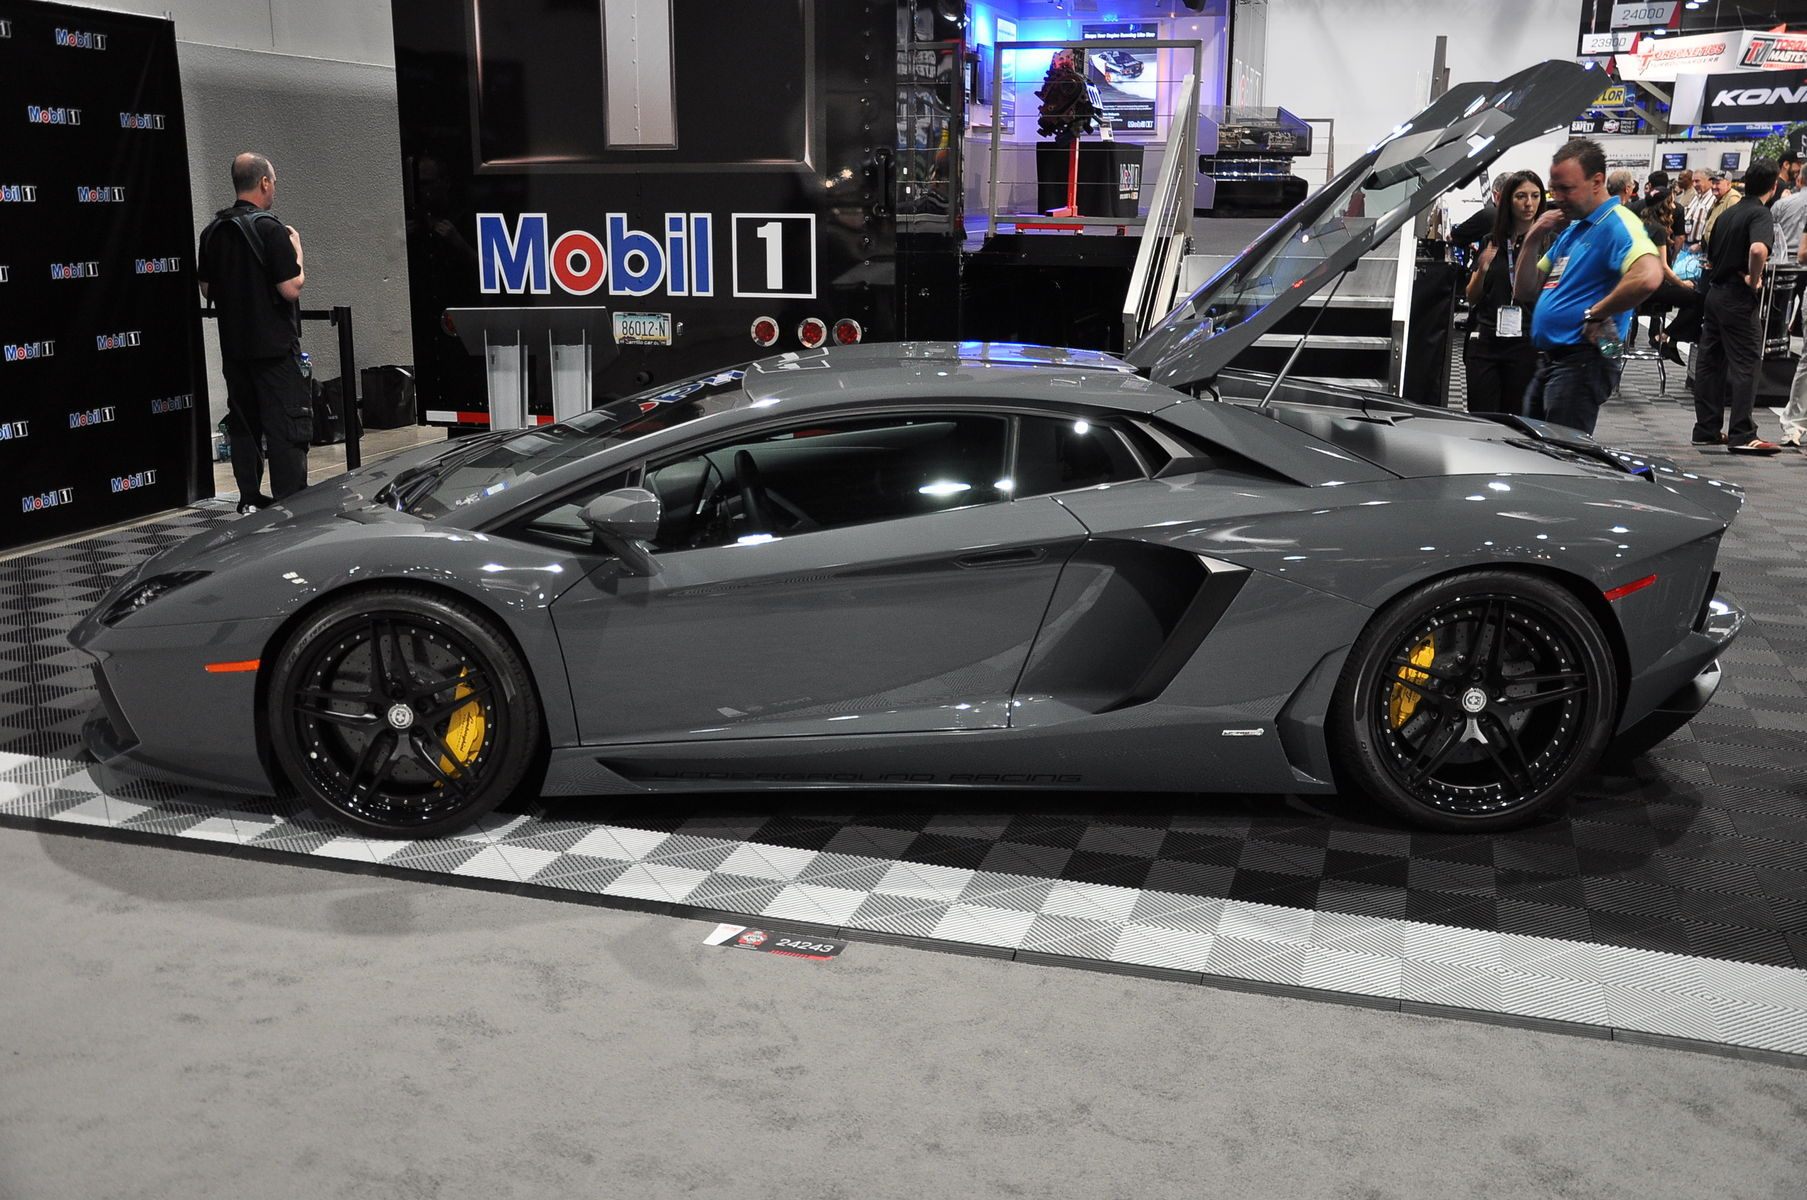 2014 Lamborghini Aventador | 2013 Lamborghini Aventador at Mobile 1 Booth